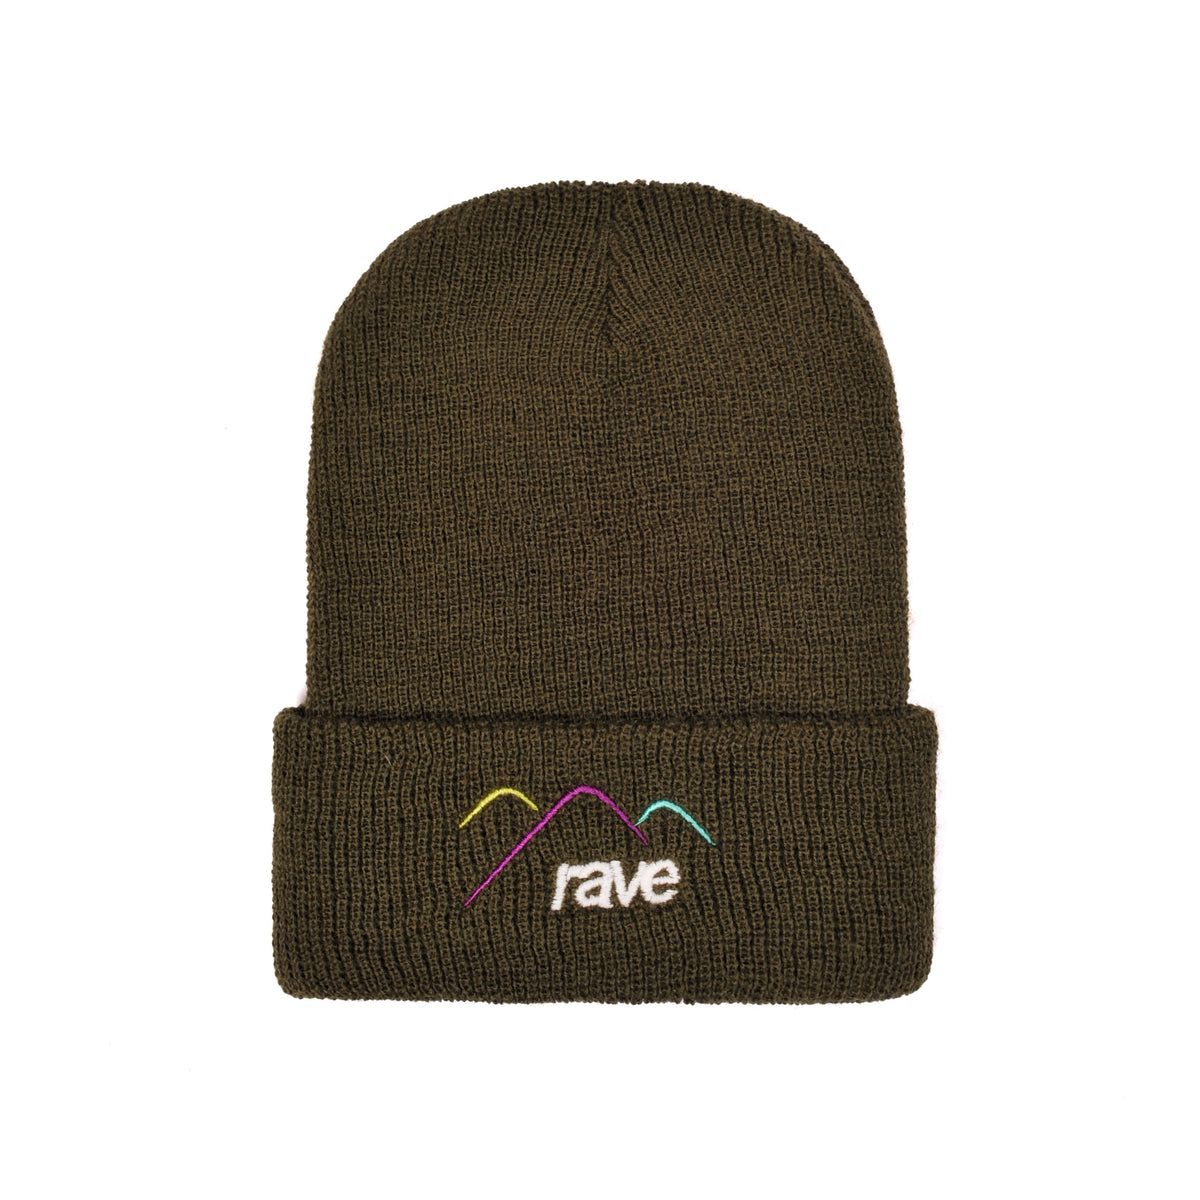 SUMMIT wool olive beanie - RAVE skateboards